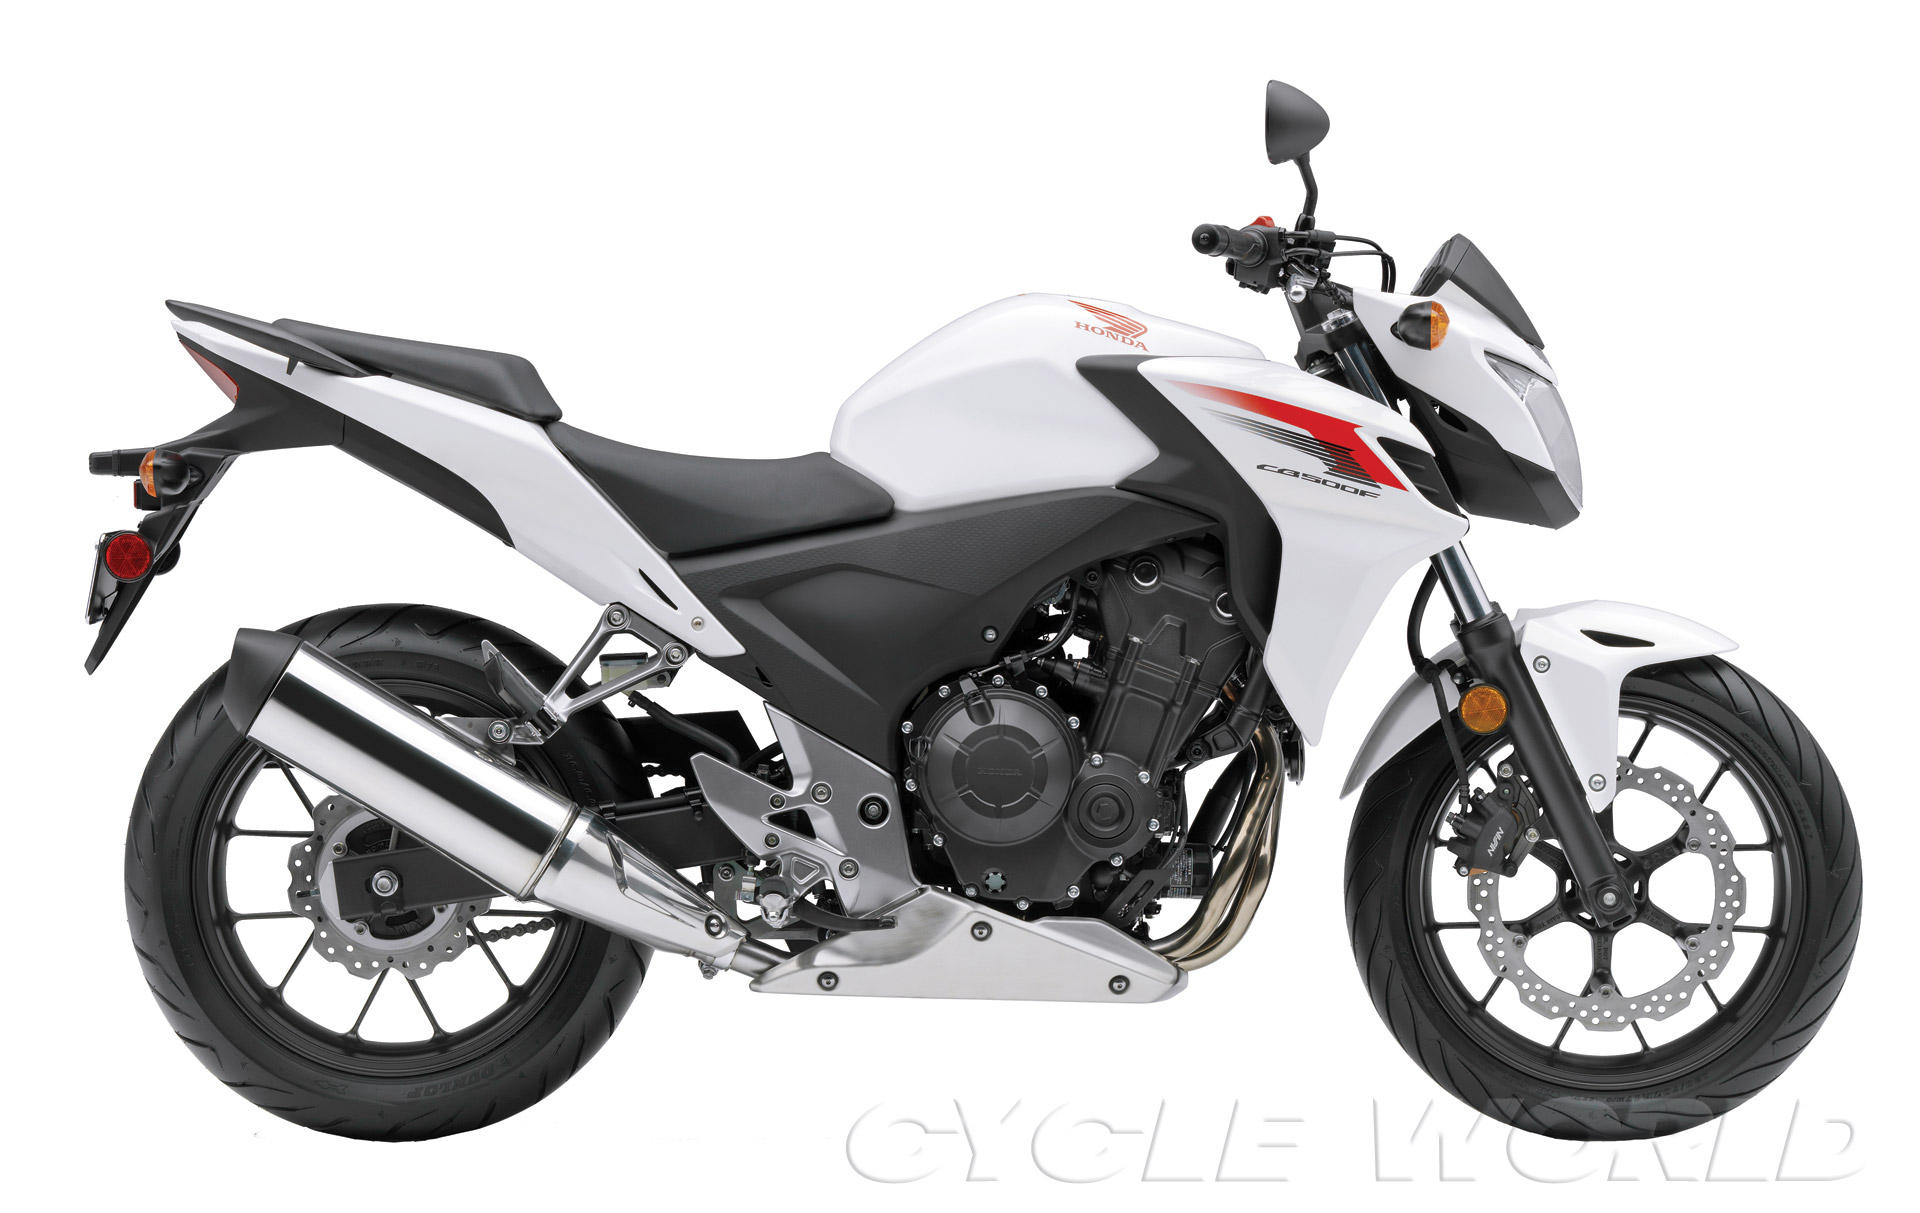 Upcoming Bikes In India 2013 And 2014 | Apps Directories